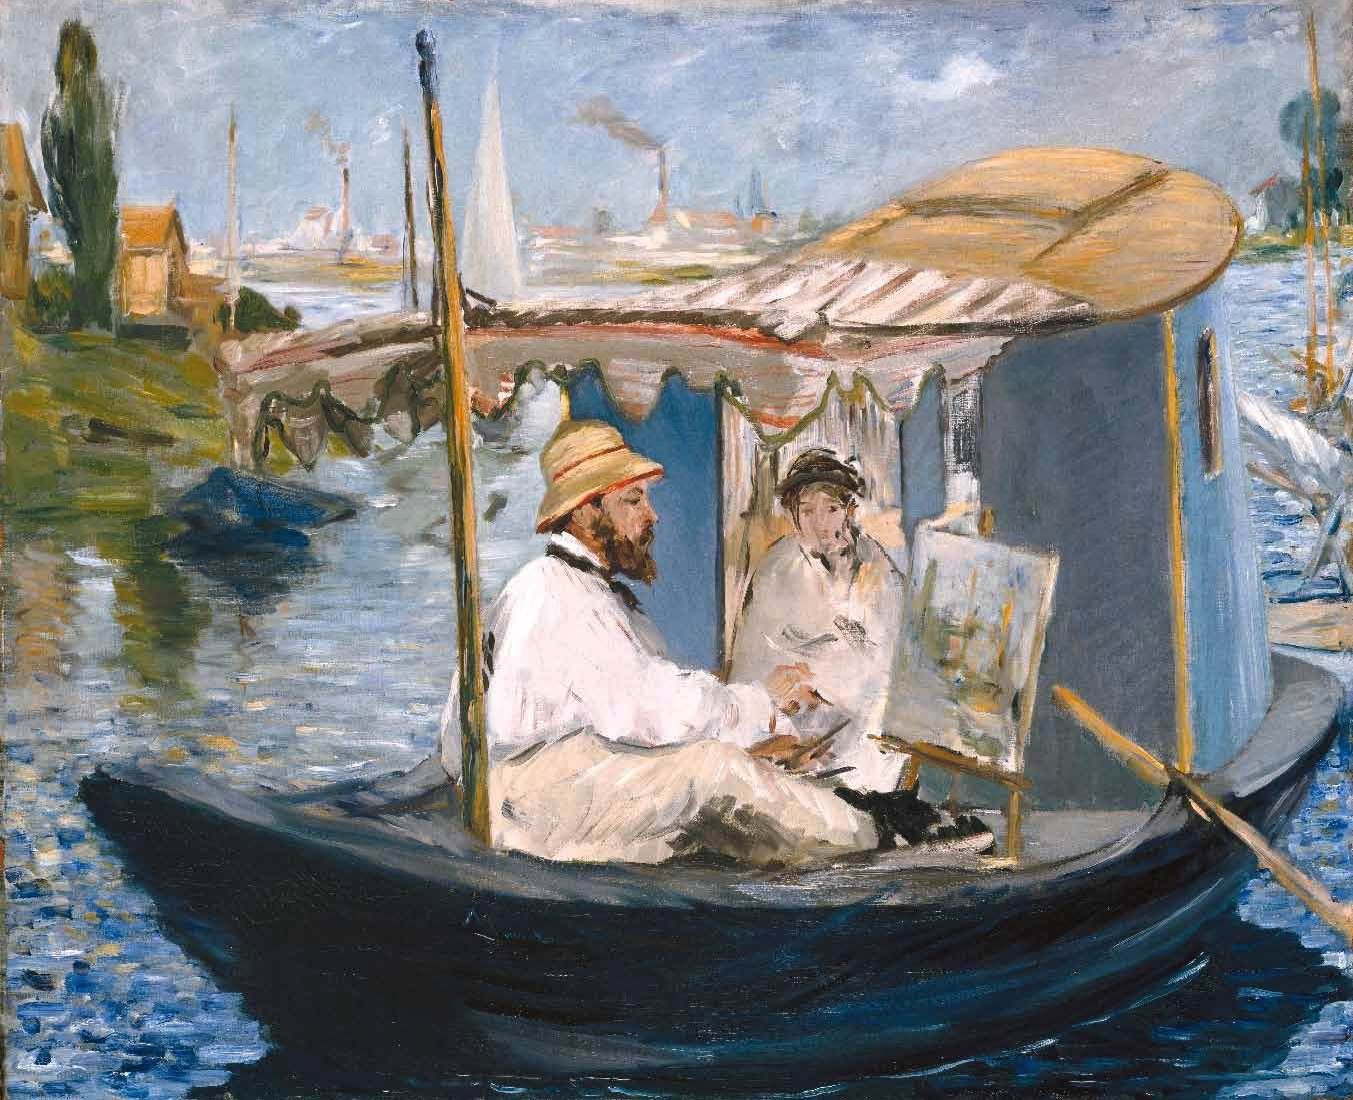 claude monet painting on his boat studio in argenteuil by manet monet pinterest monet. Black Bedroom Furniture Sets. Home Design Ideas